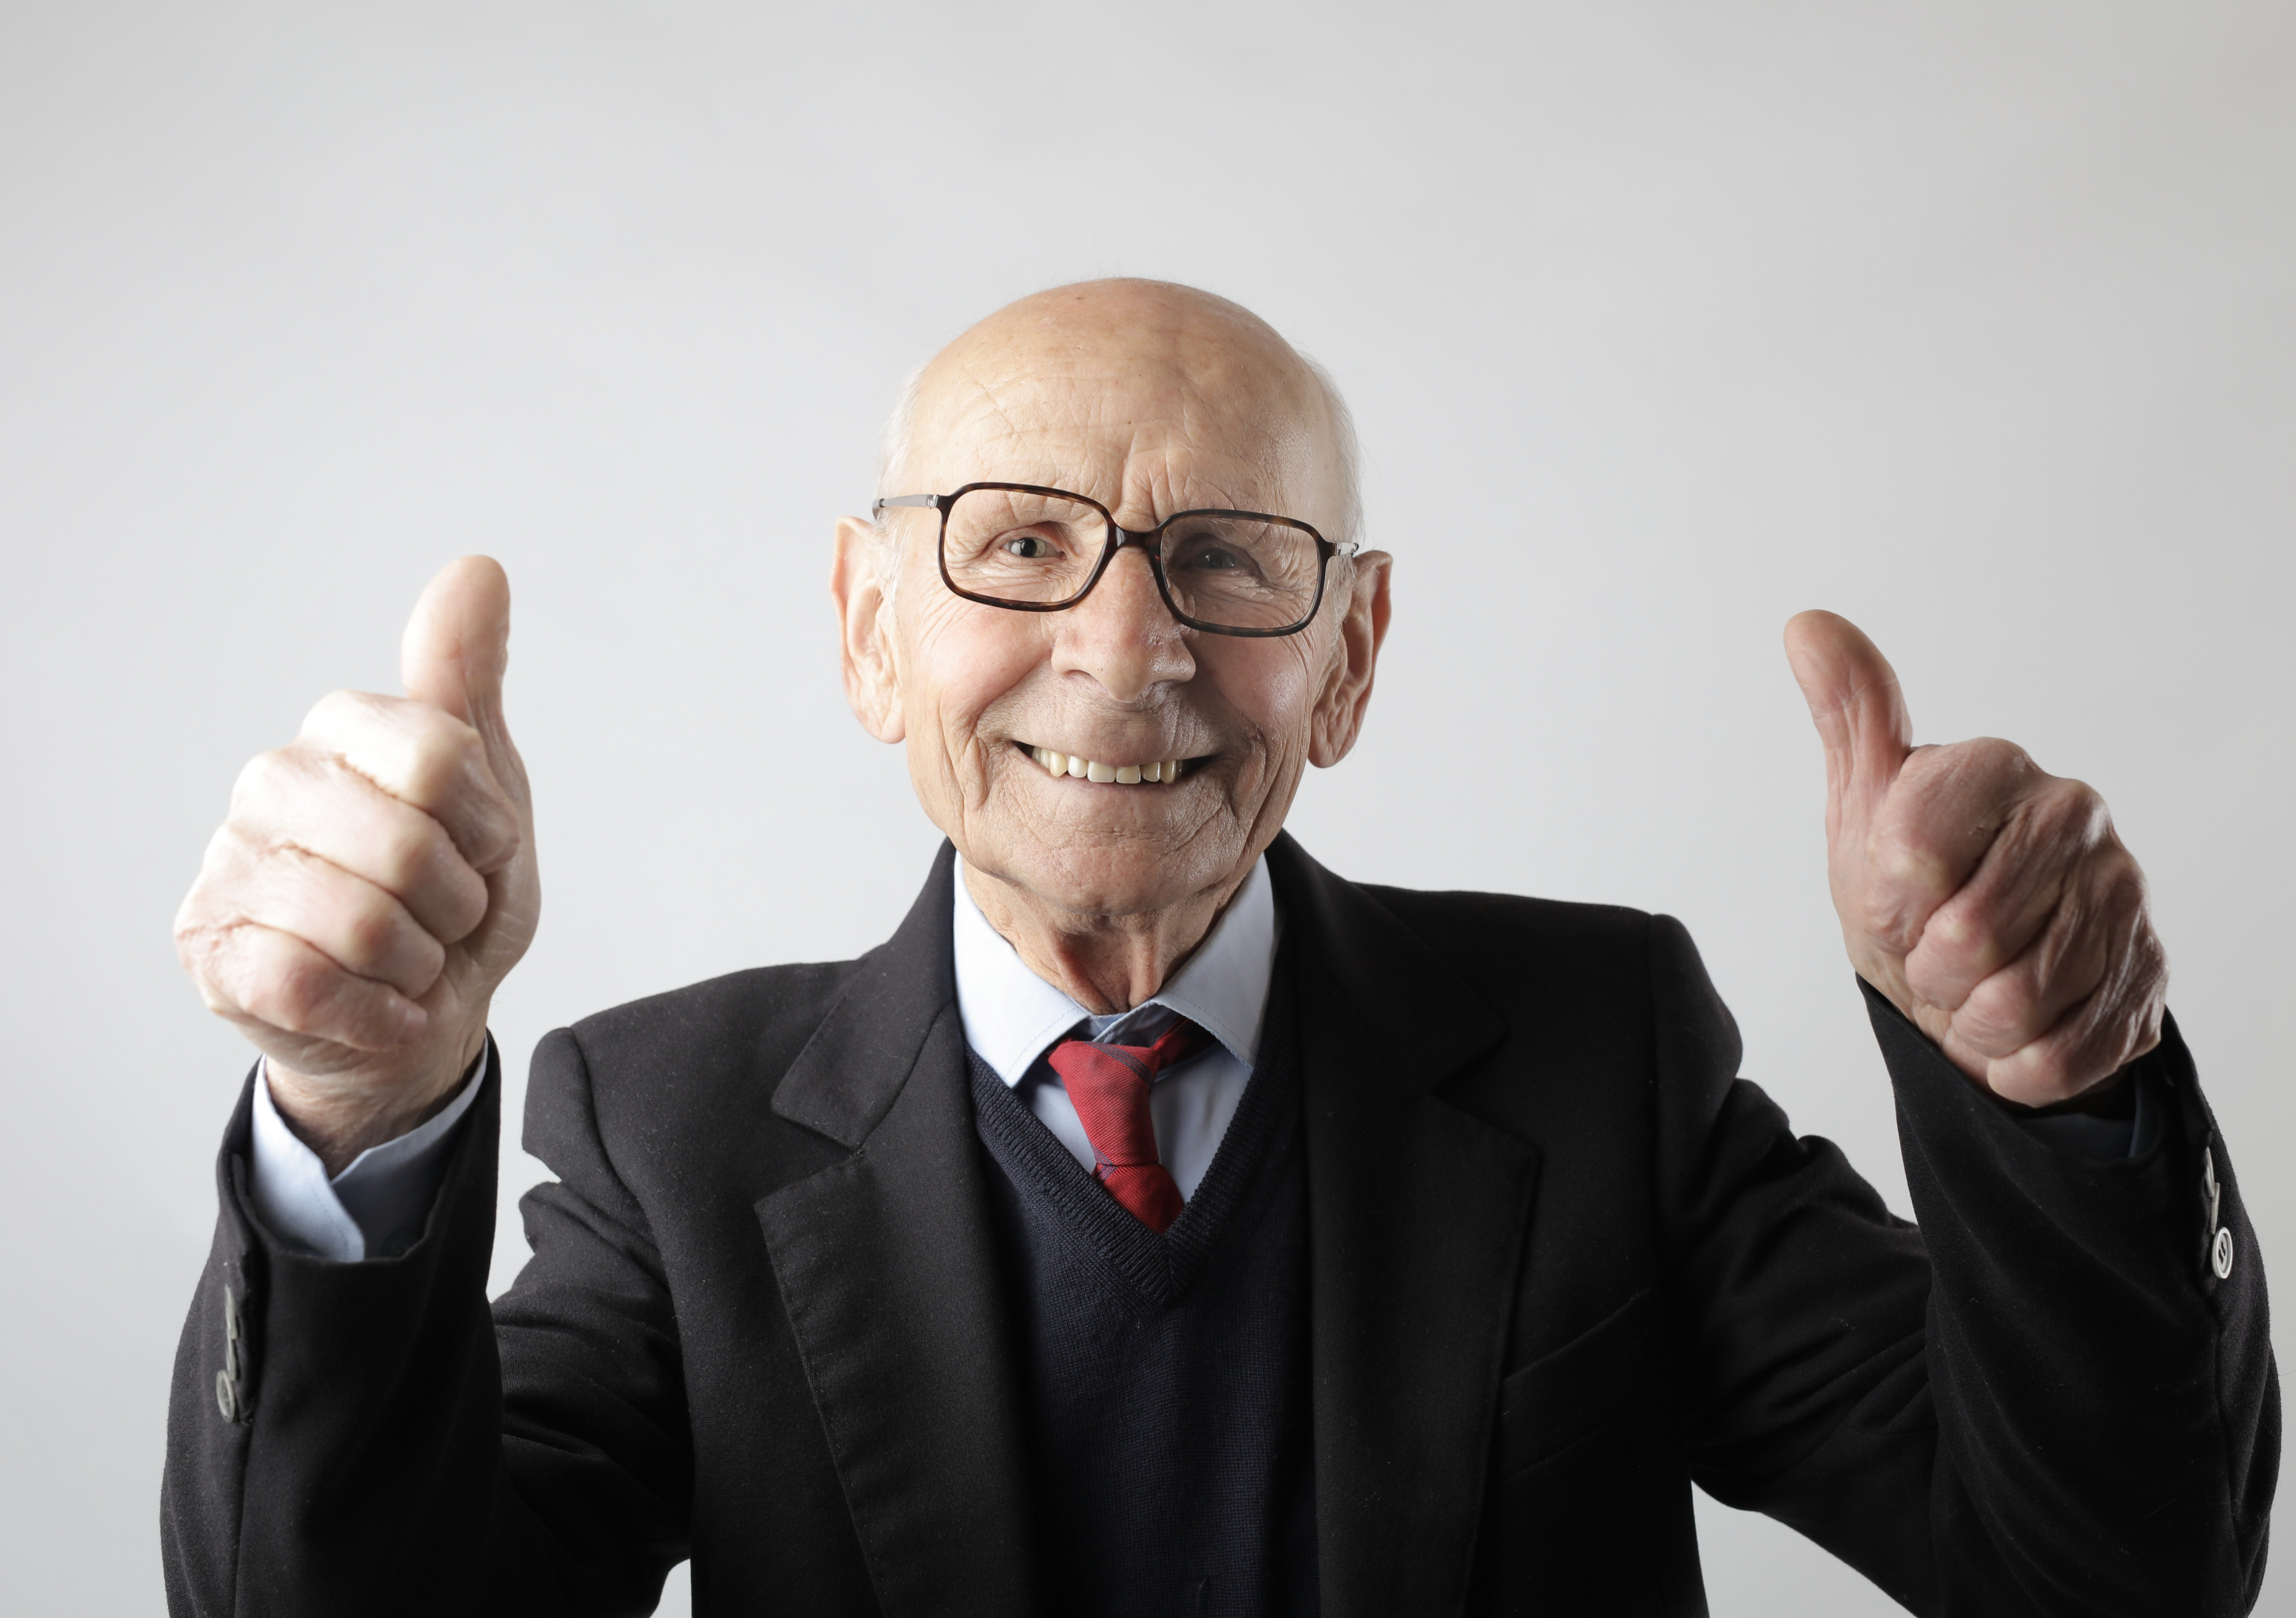 A man in a suit showing two thumbs up.   Photo: Pexels